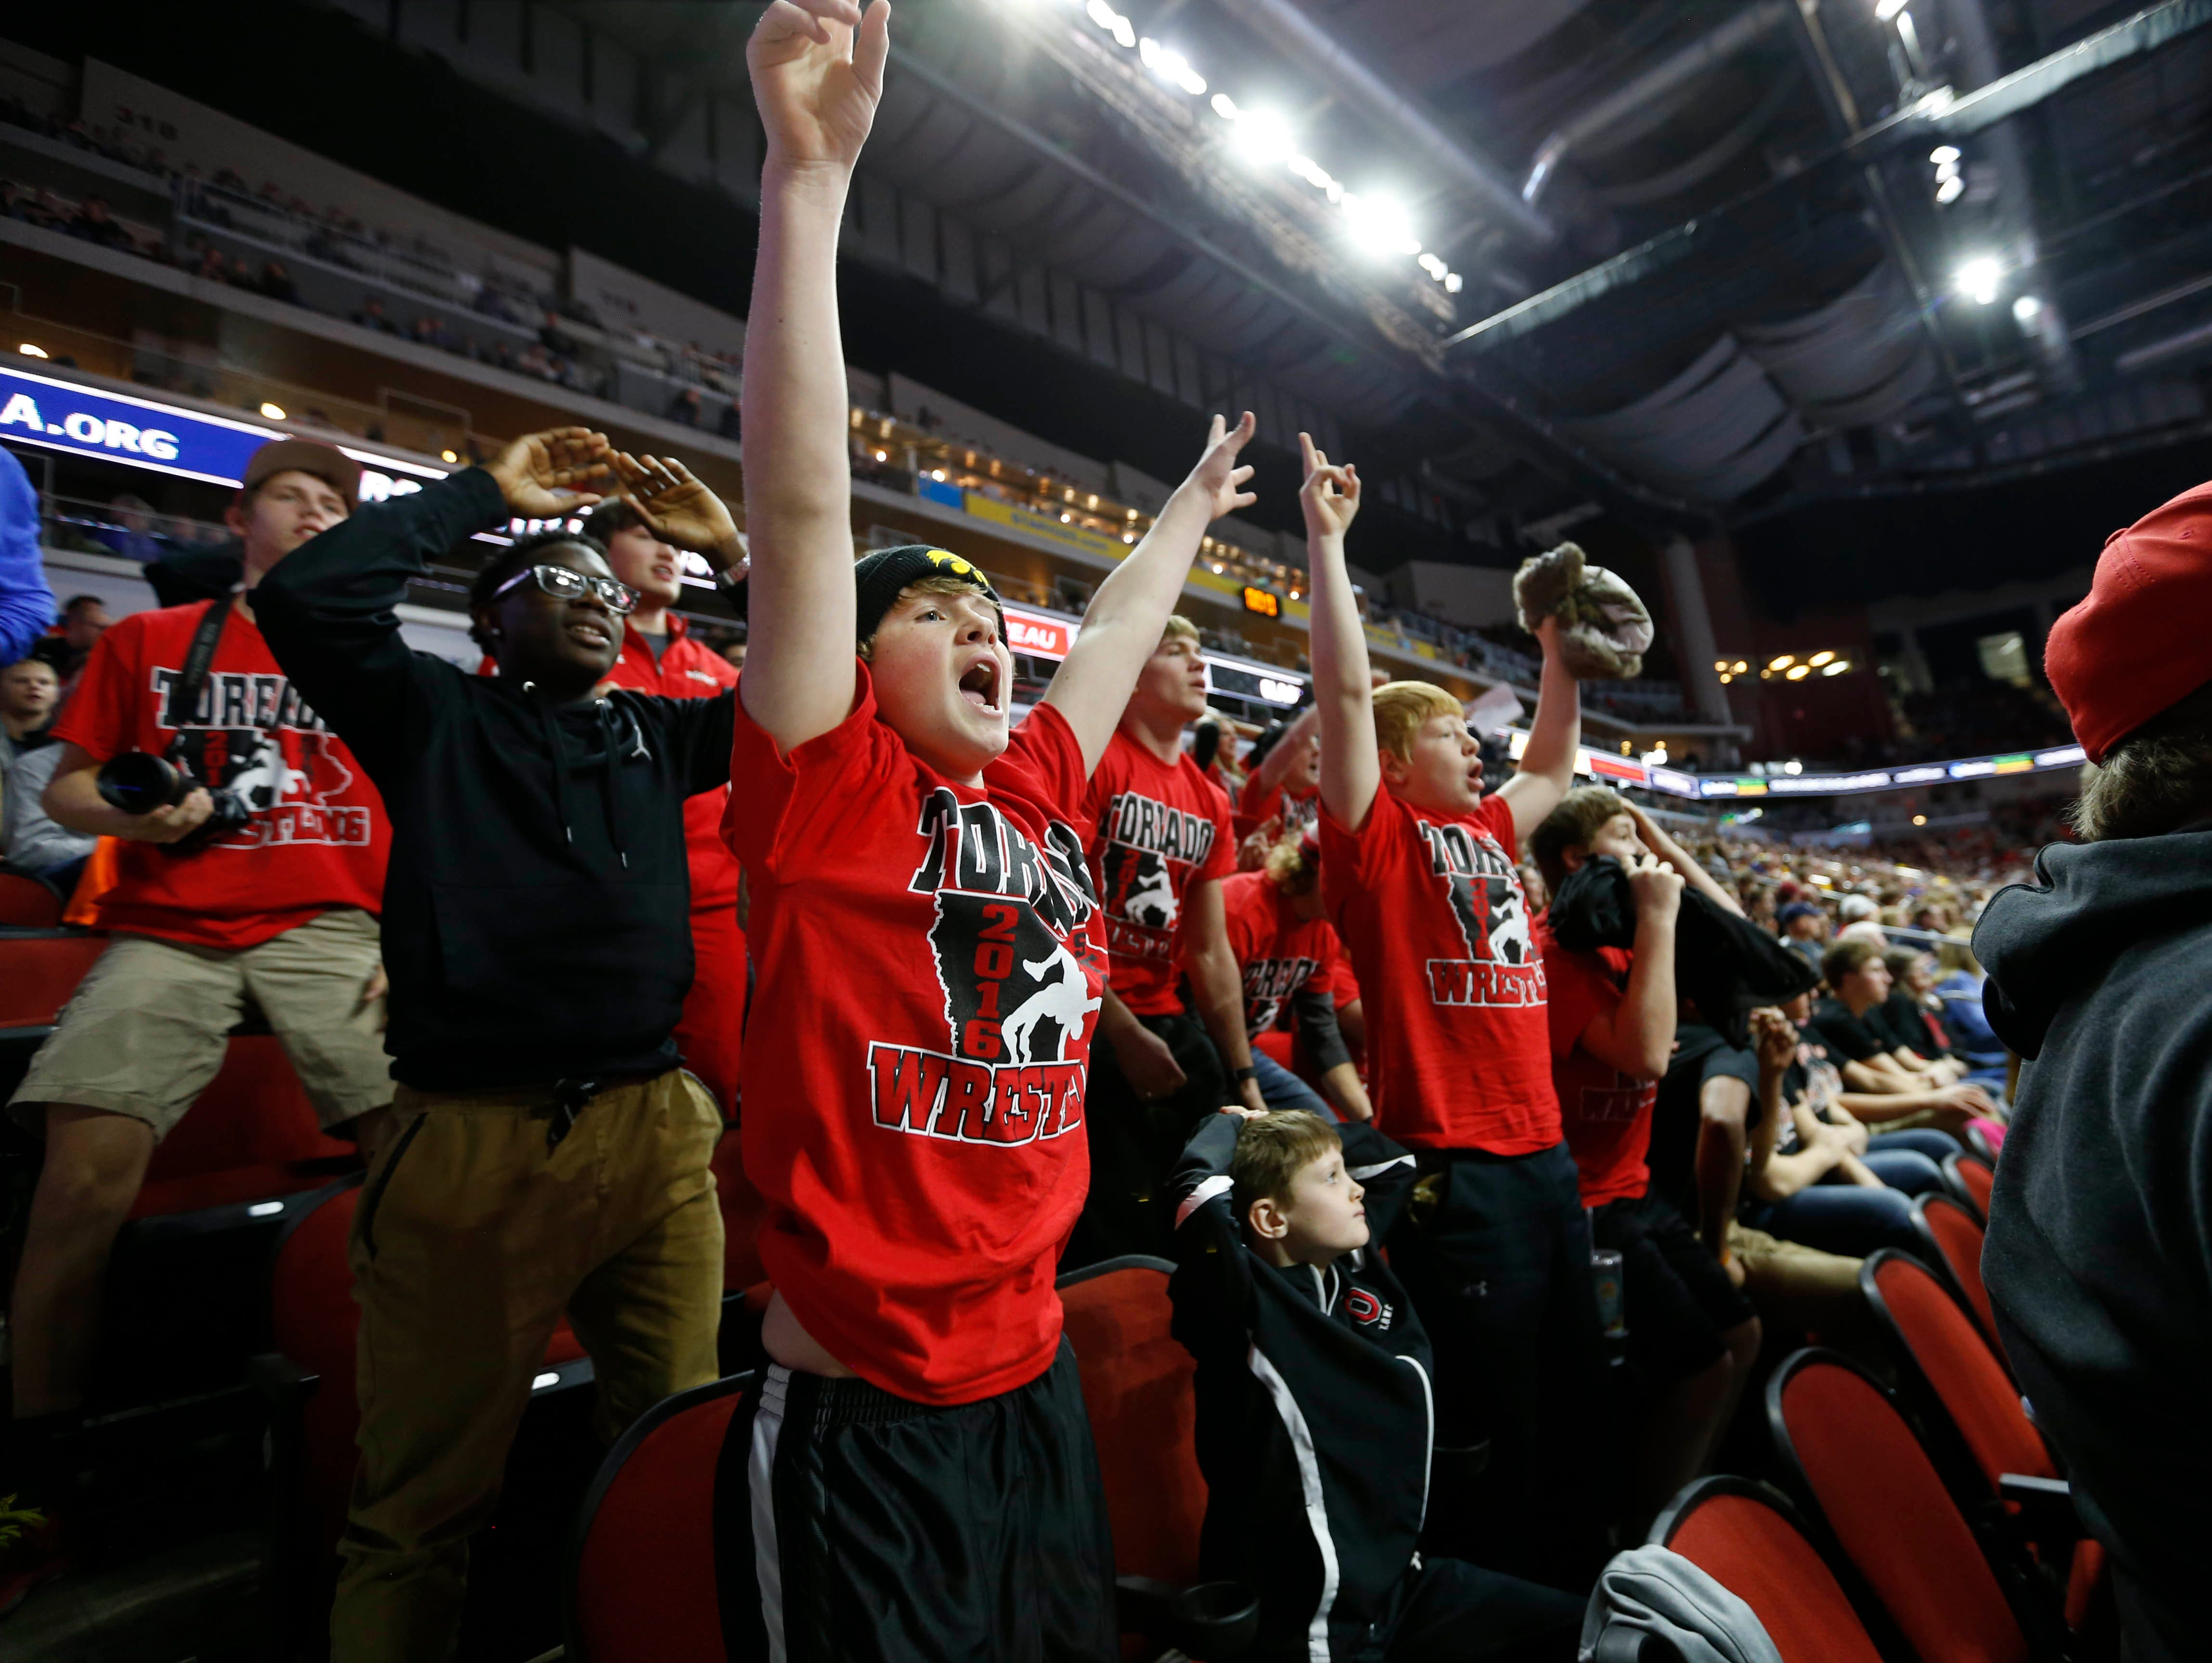 Nick Breon, 14 (left) and a group of fans from Boone cheer as they watch Boone freshman Mason Hulse get the win Thursday, Feb. 18, 2016 in the class 3A opening round of the state wrestling tournament in Des Moines.